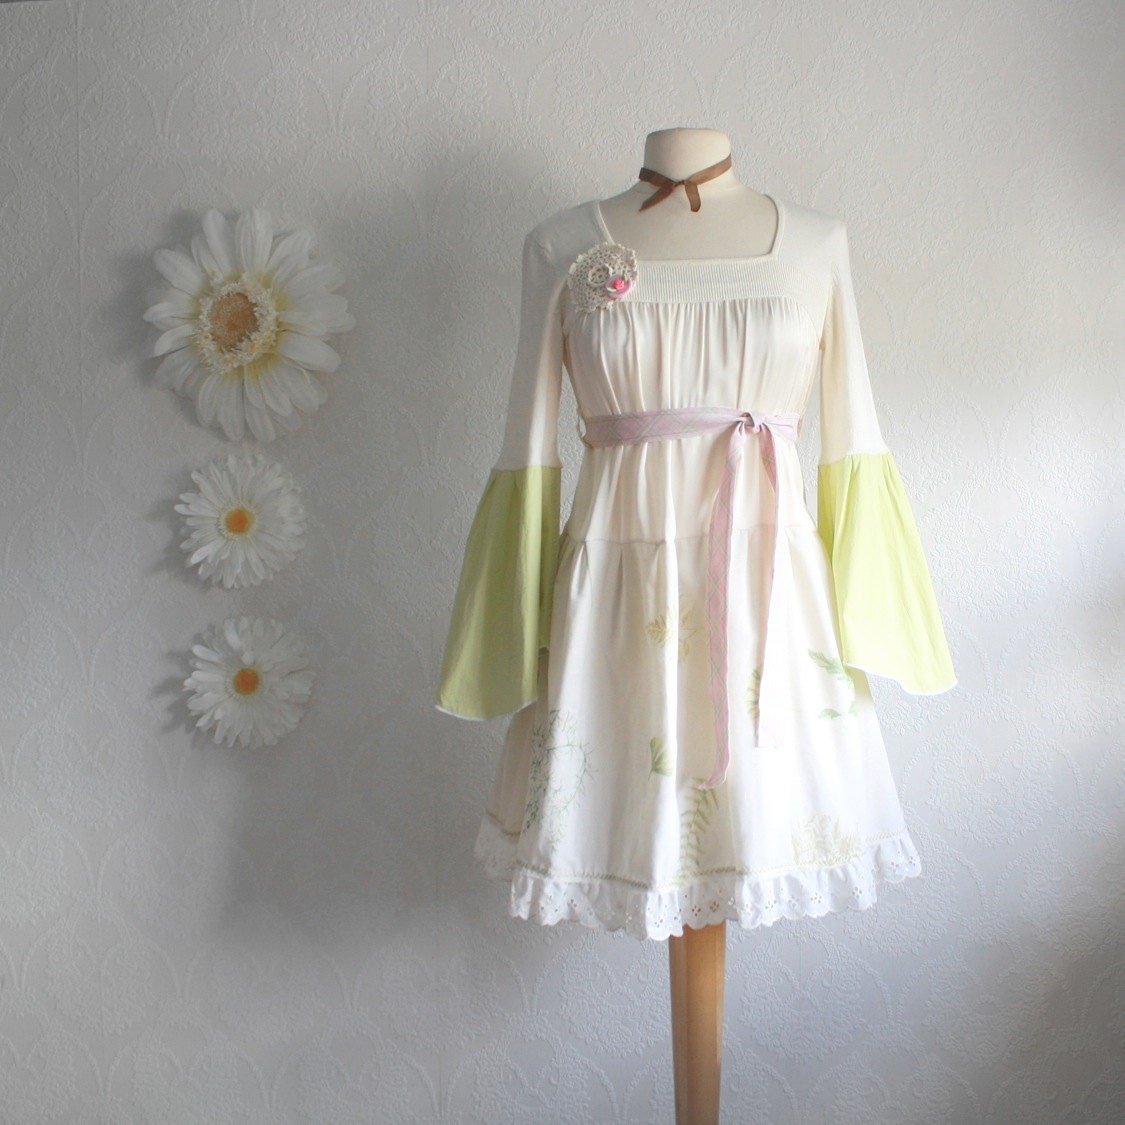 Retro Style Shabby Chic Dress Bohemian Chic Cream Silk Lime